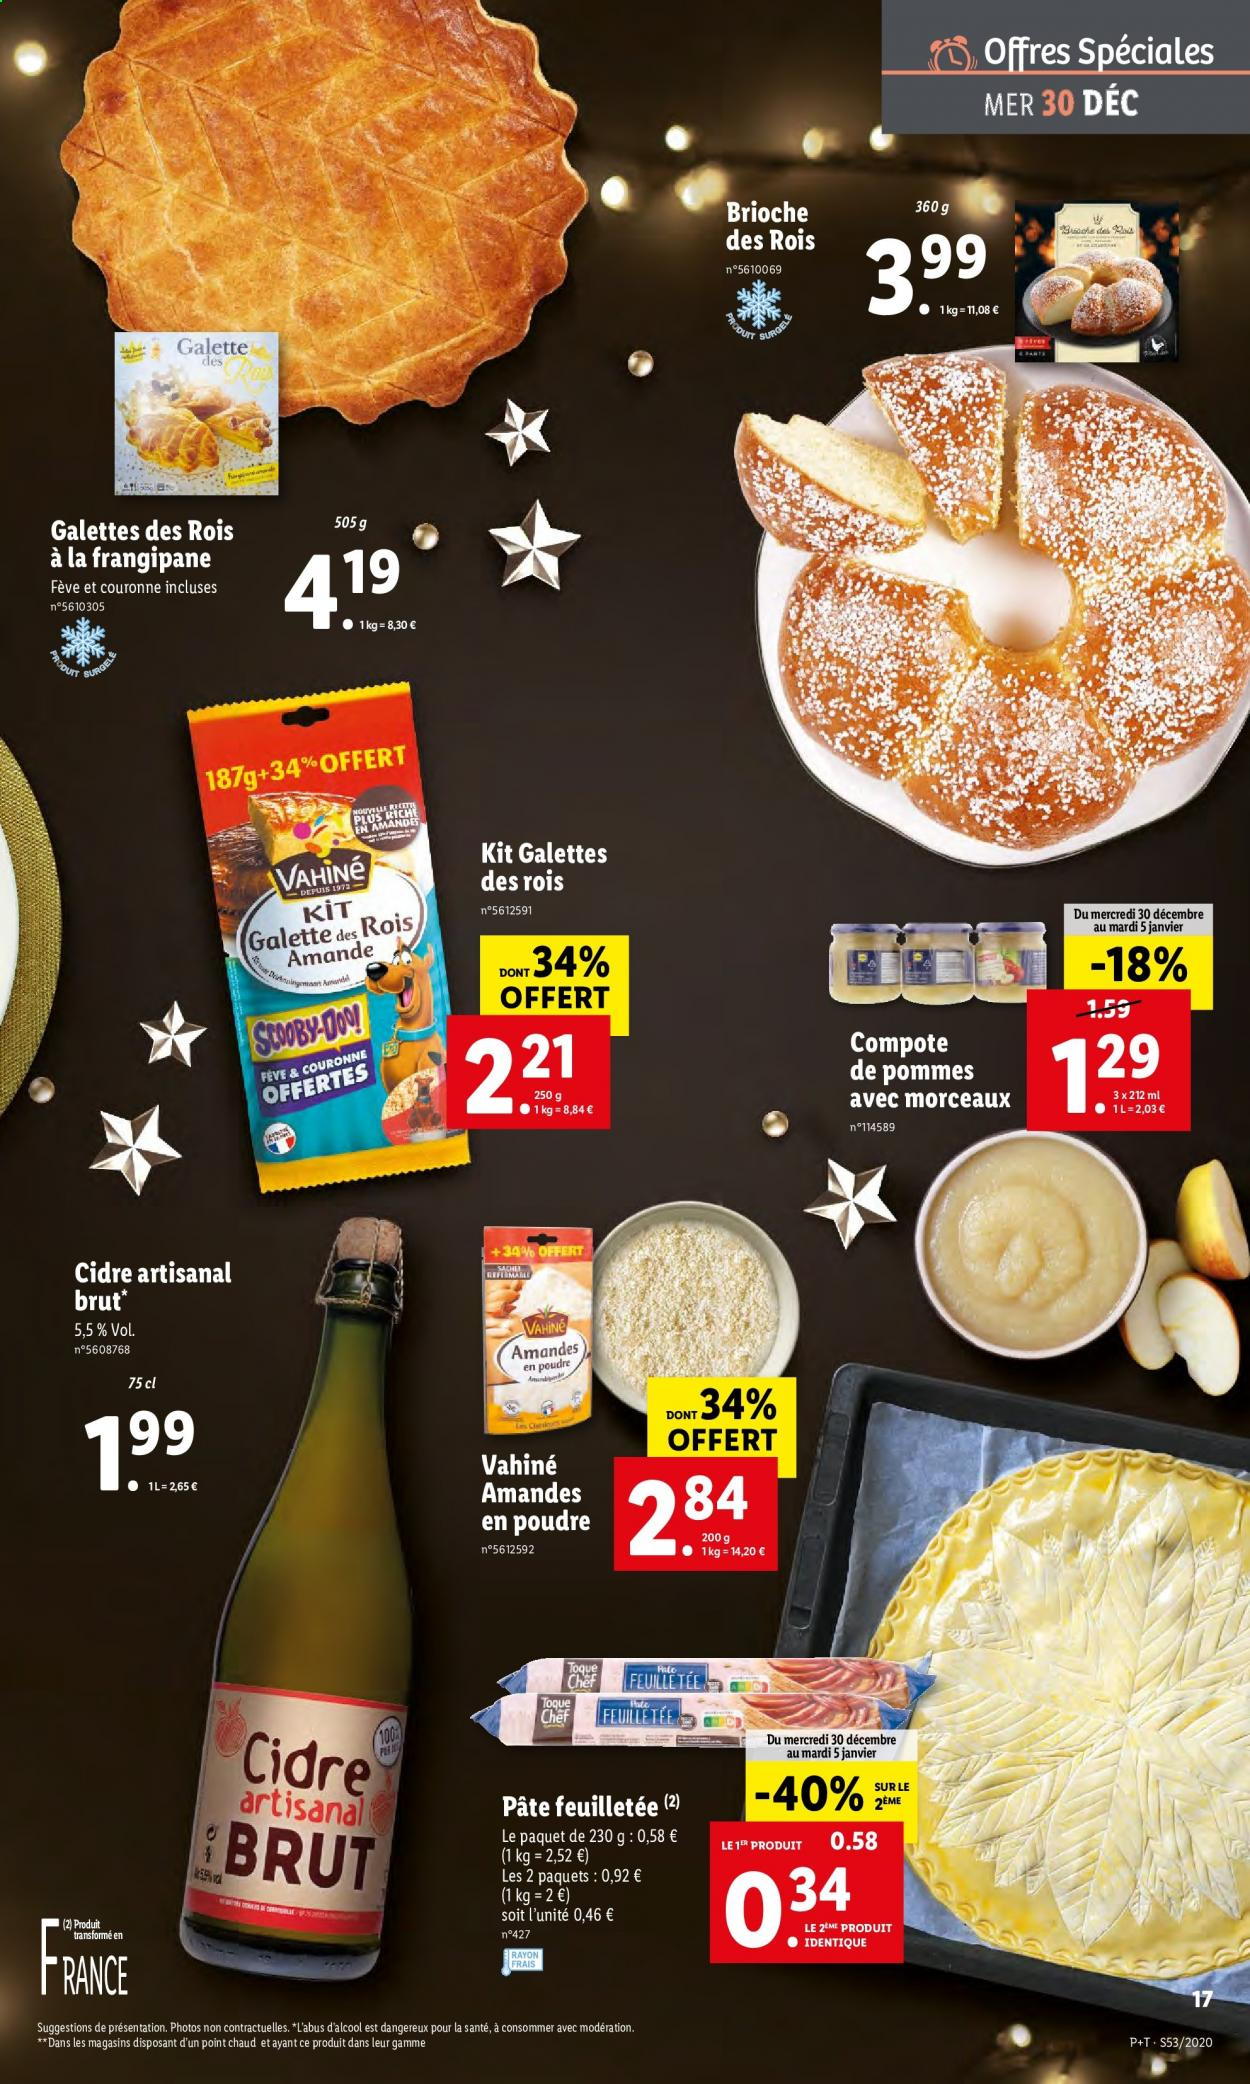 Catalogue Lidl - 30.12.2020 - 05.01.2021. Page 17.